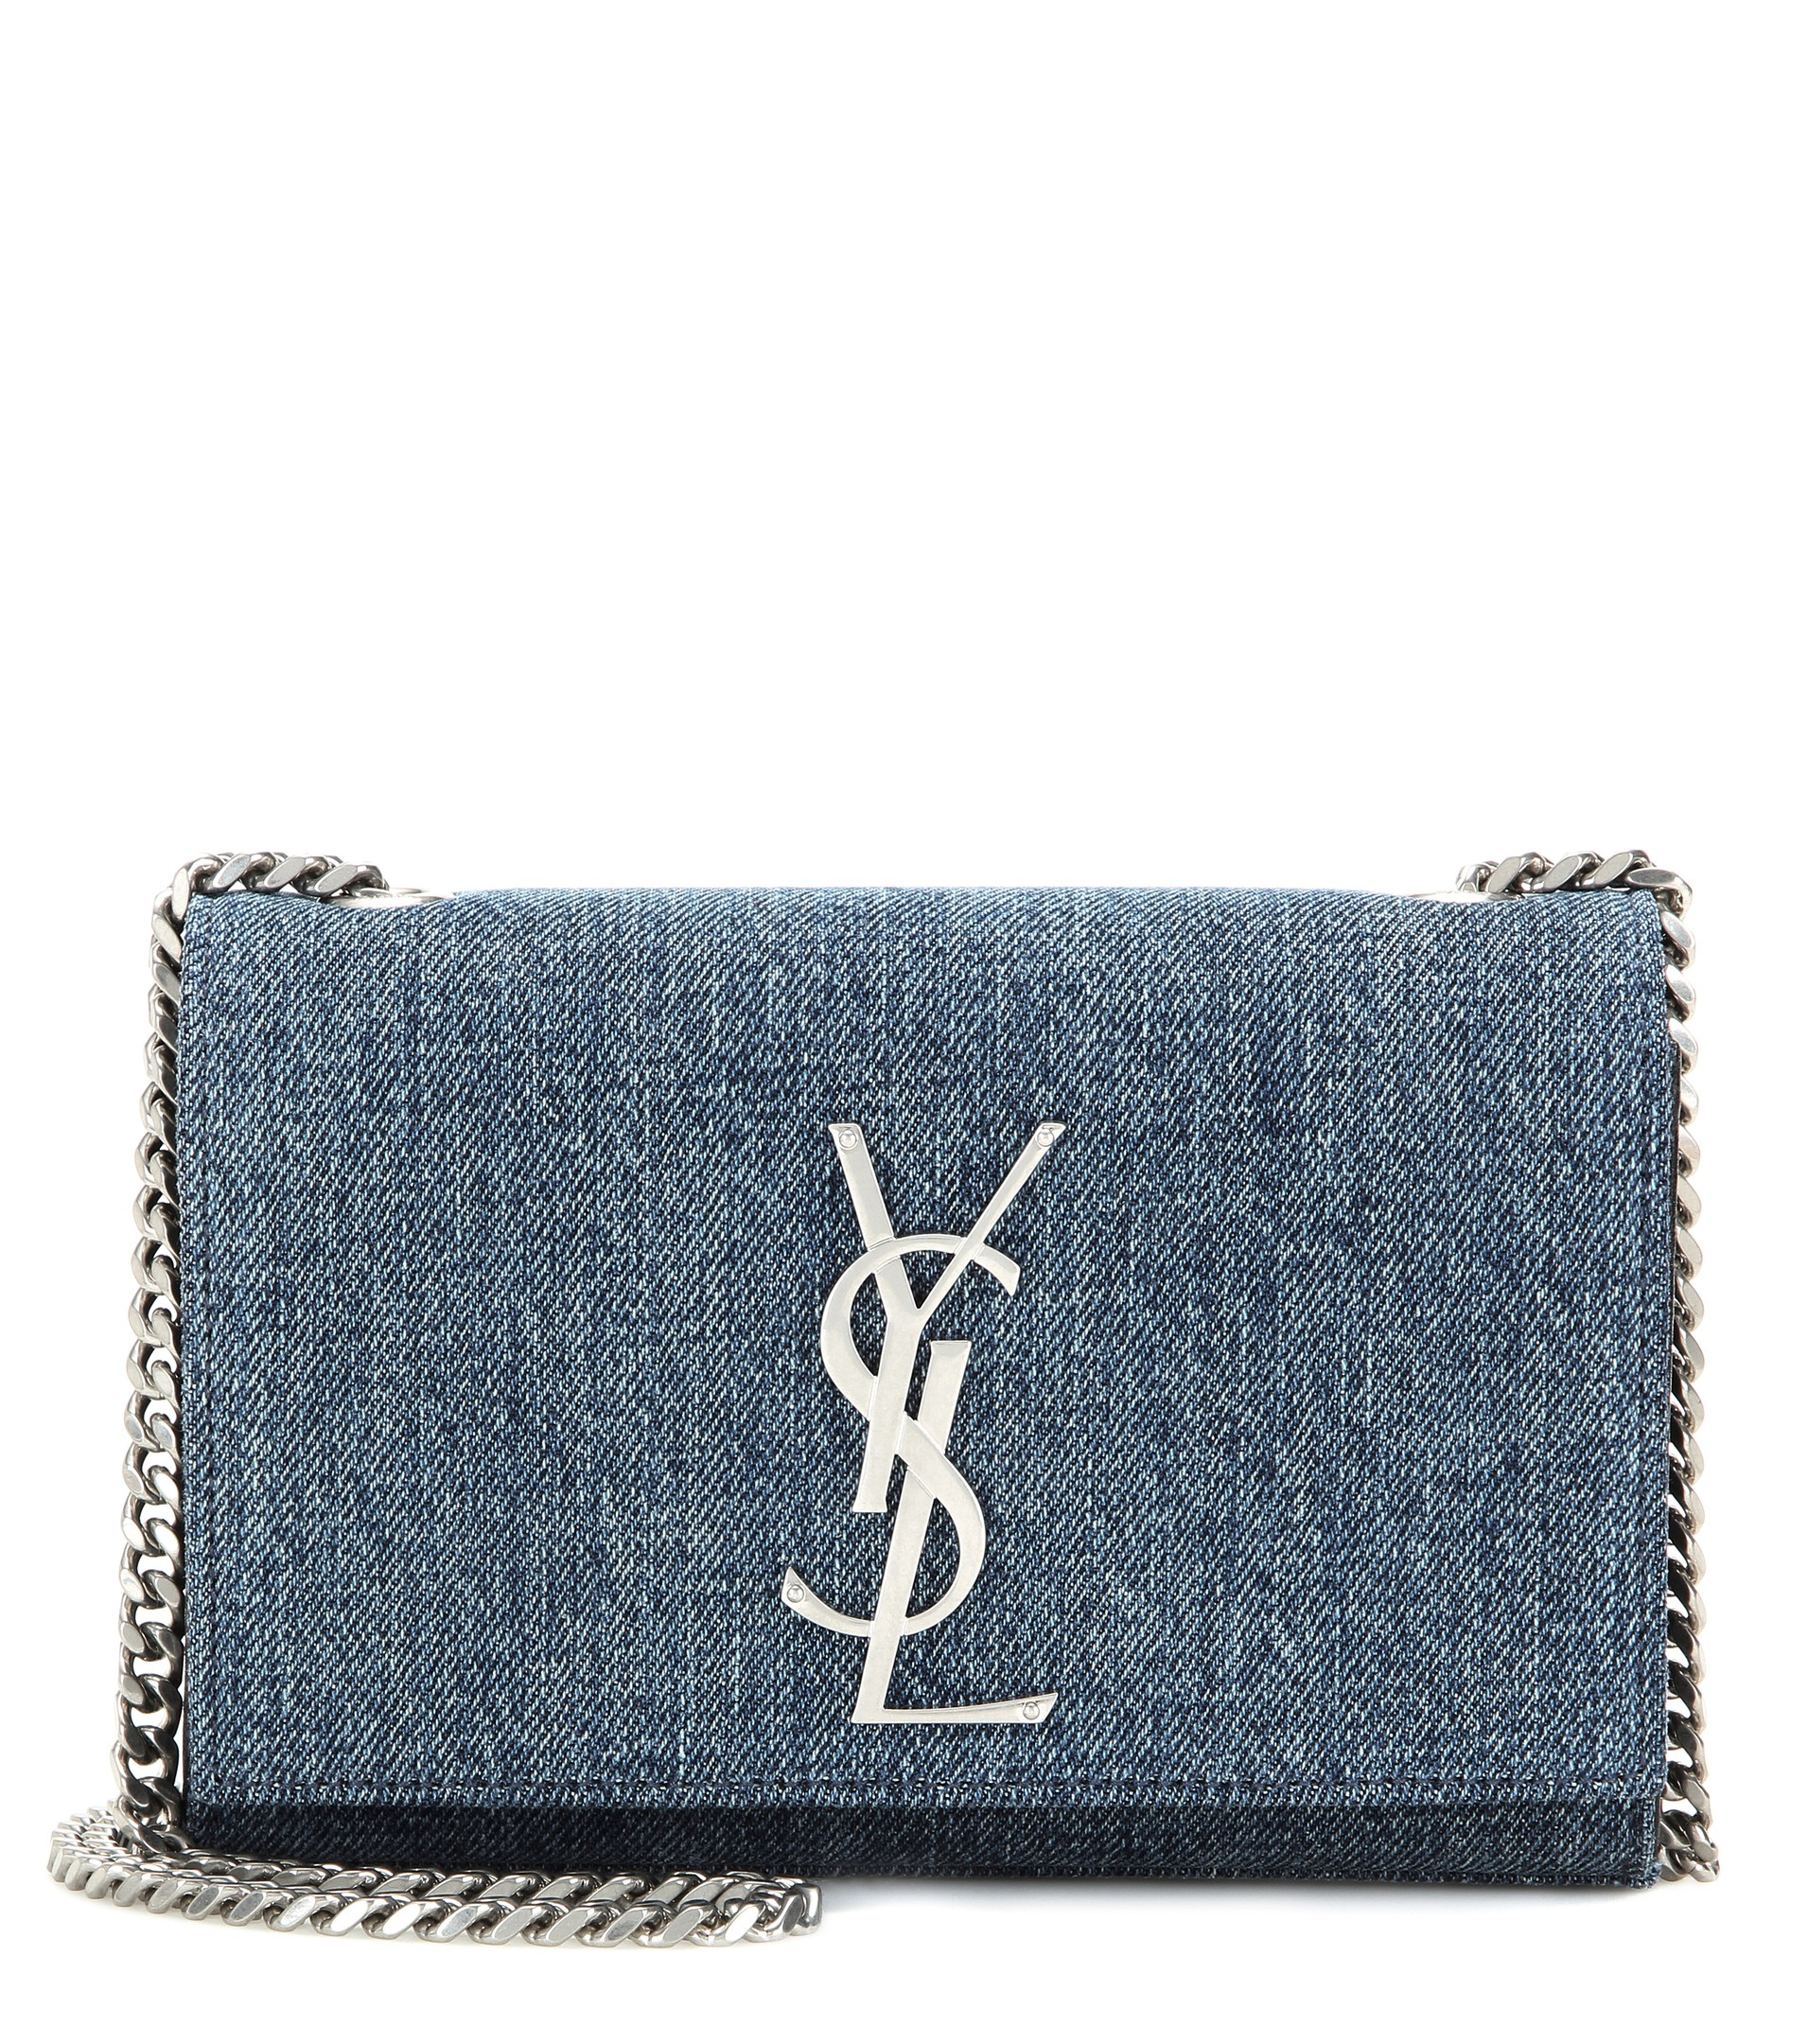 677cb1ebc2 Lyst - Saint Laurent Classic Monogram Denim Shoulder Bag .